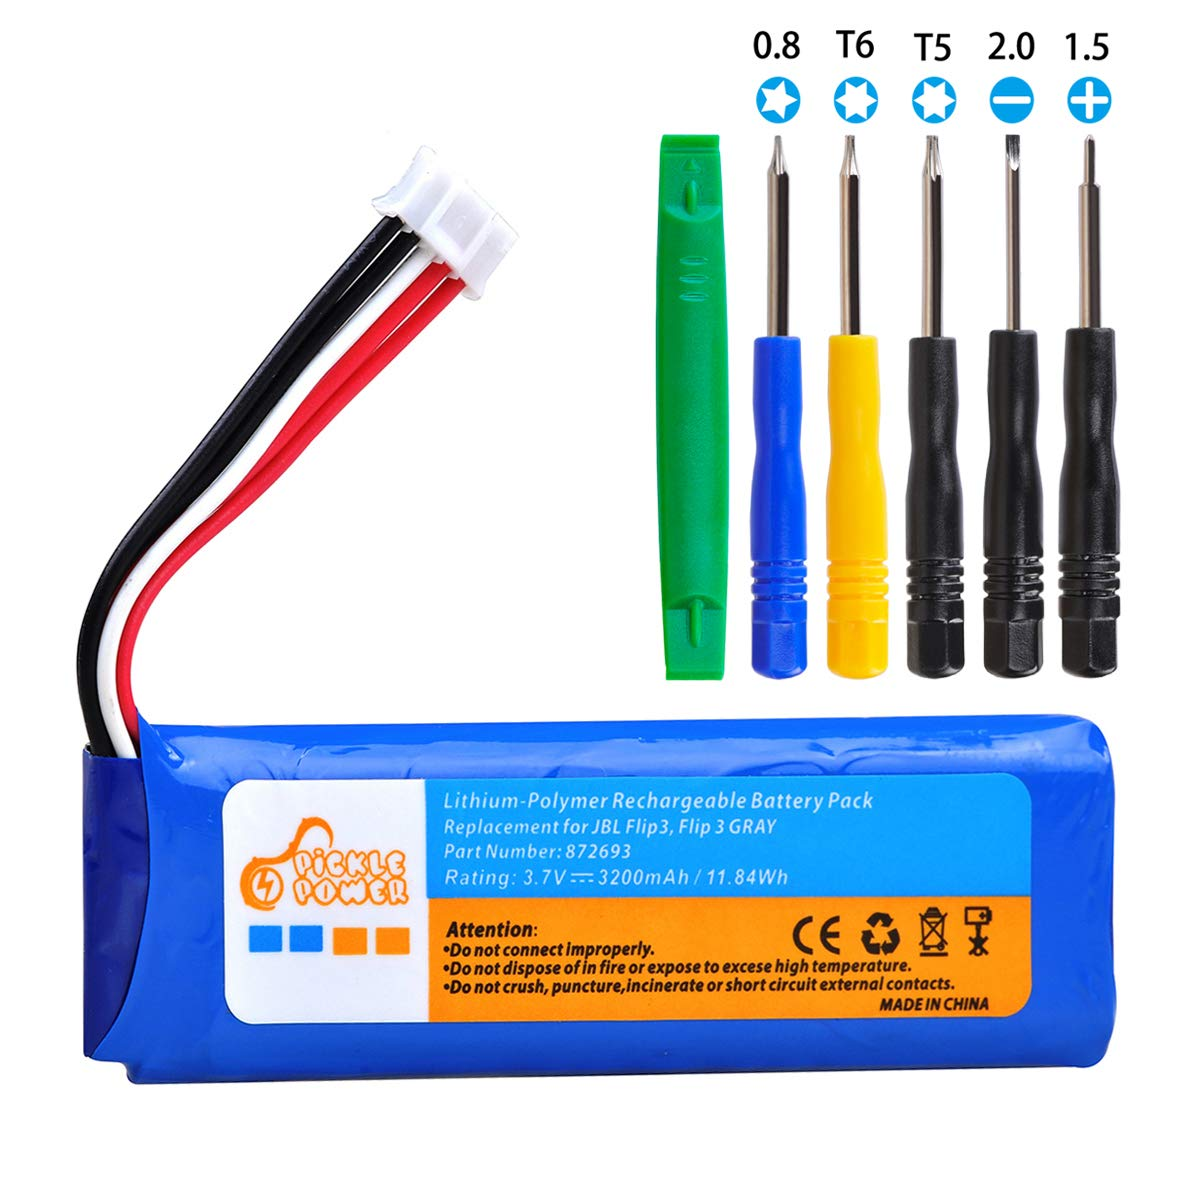 3200mAh Battery Bateria GSP872693 for JBL Flip 3 Flip 3 Gray GSP872693 P763098 03 with Install Tools (3.7V, 11.84Wh)